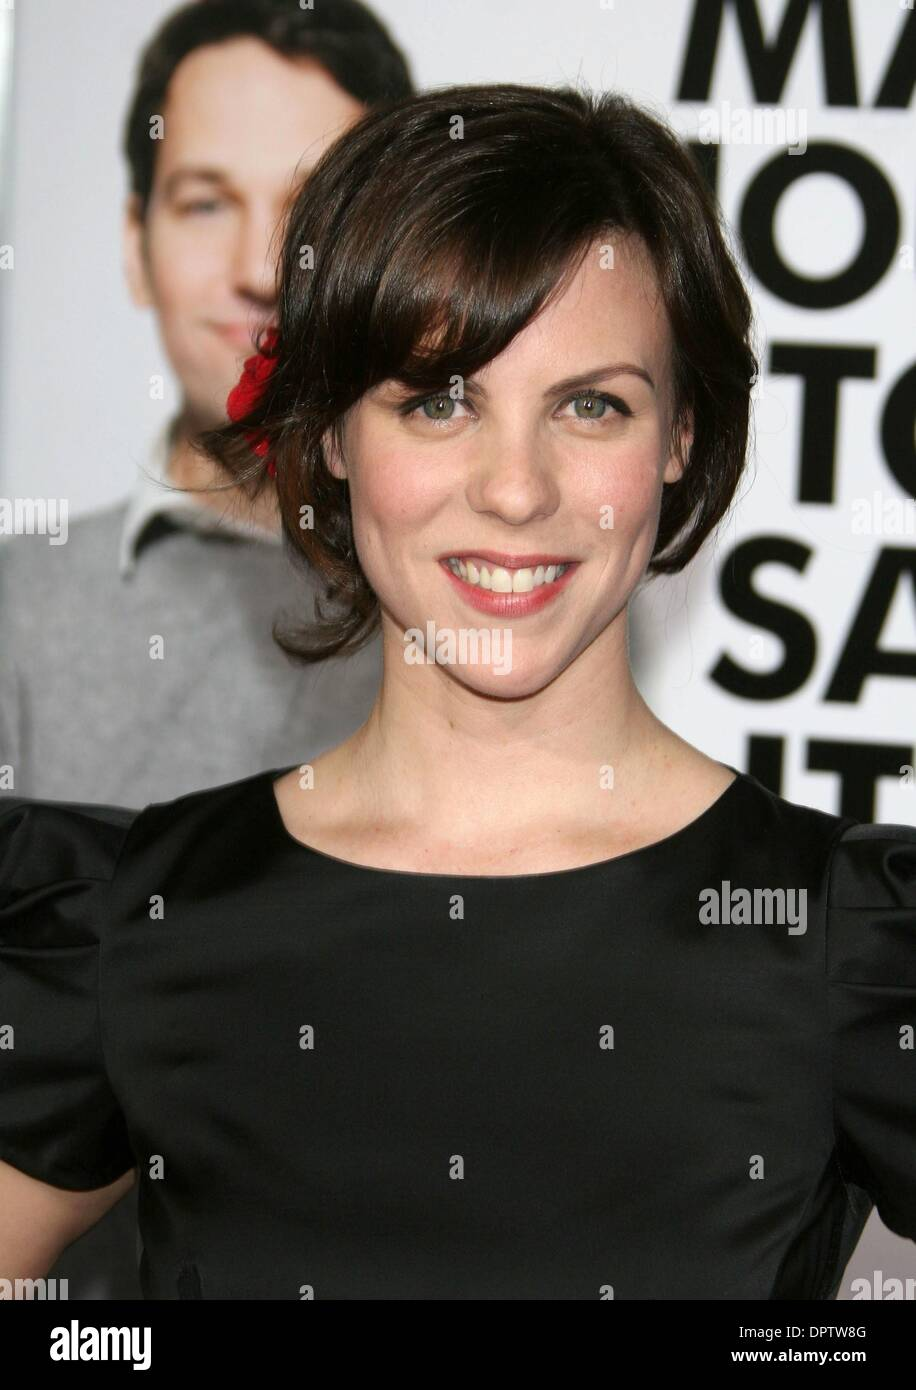 Mar 17 2009 Los Angeles California Usa Actress Sarah Burns At Stock Photo Alamy